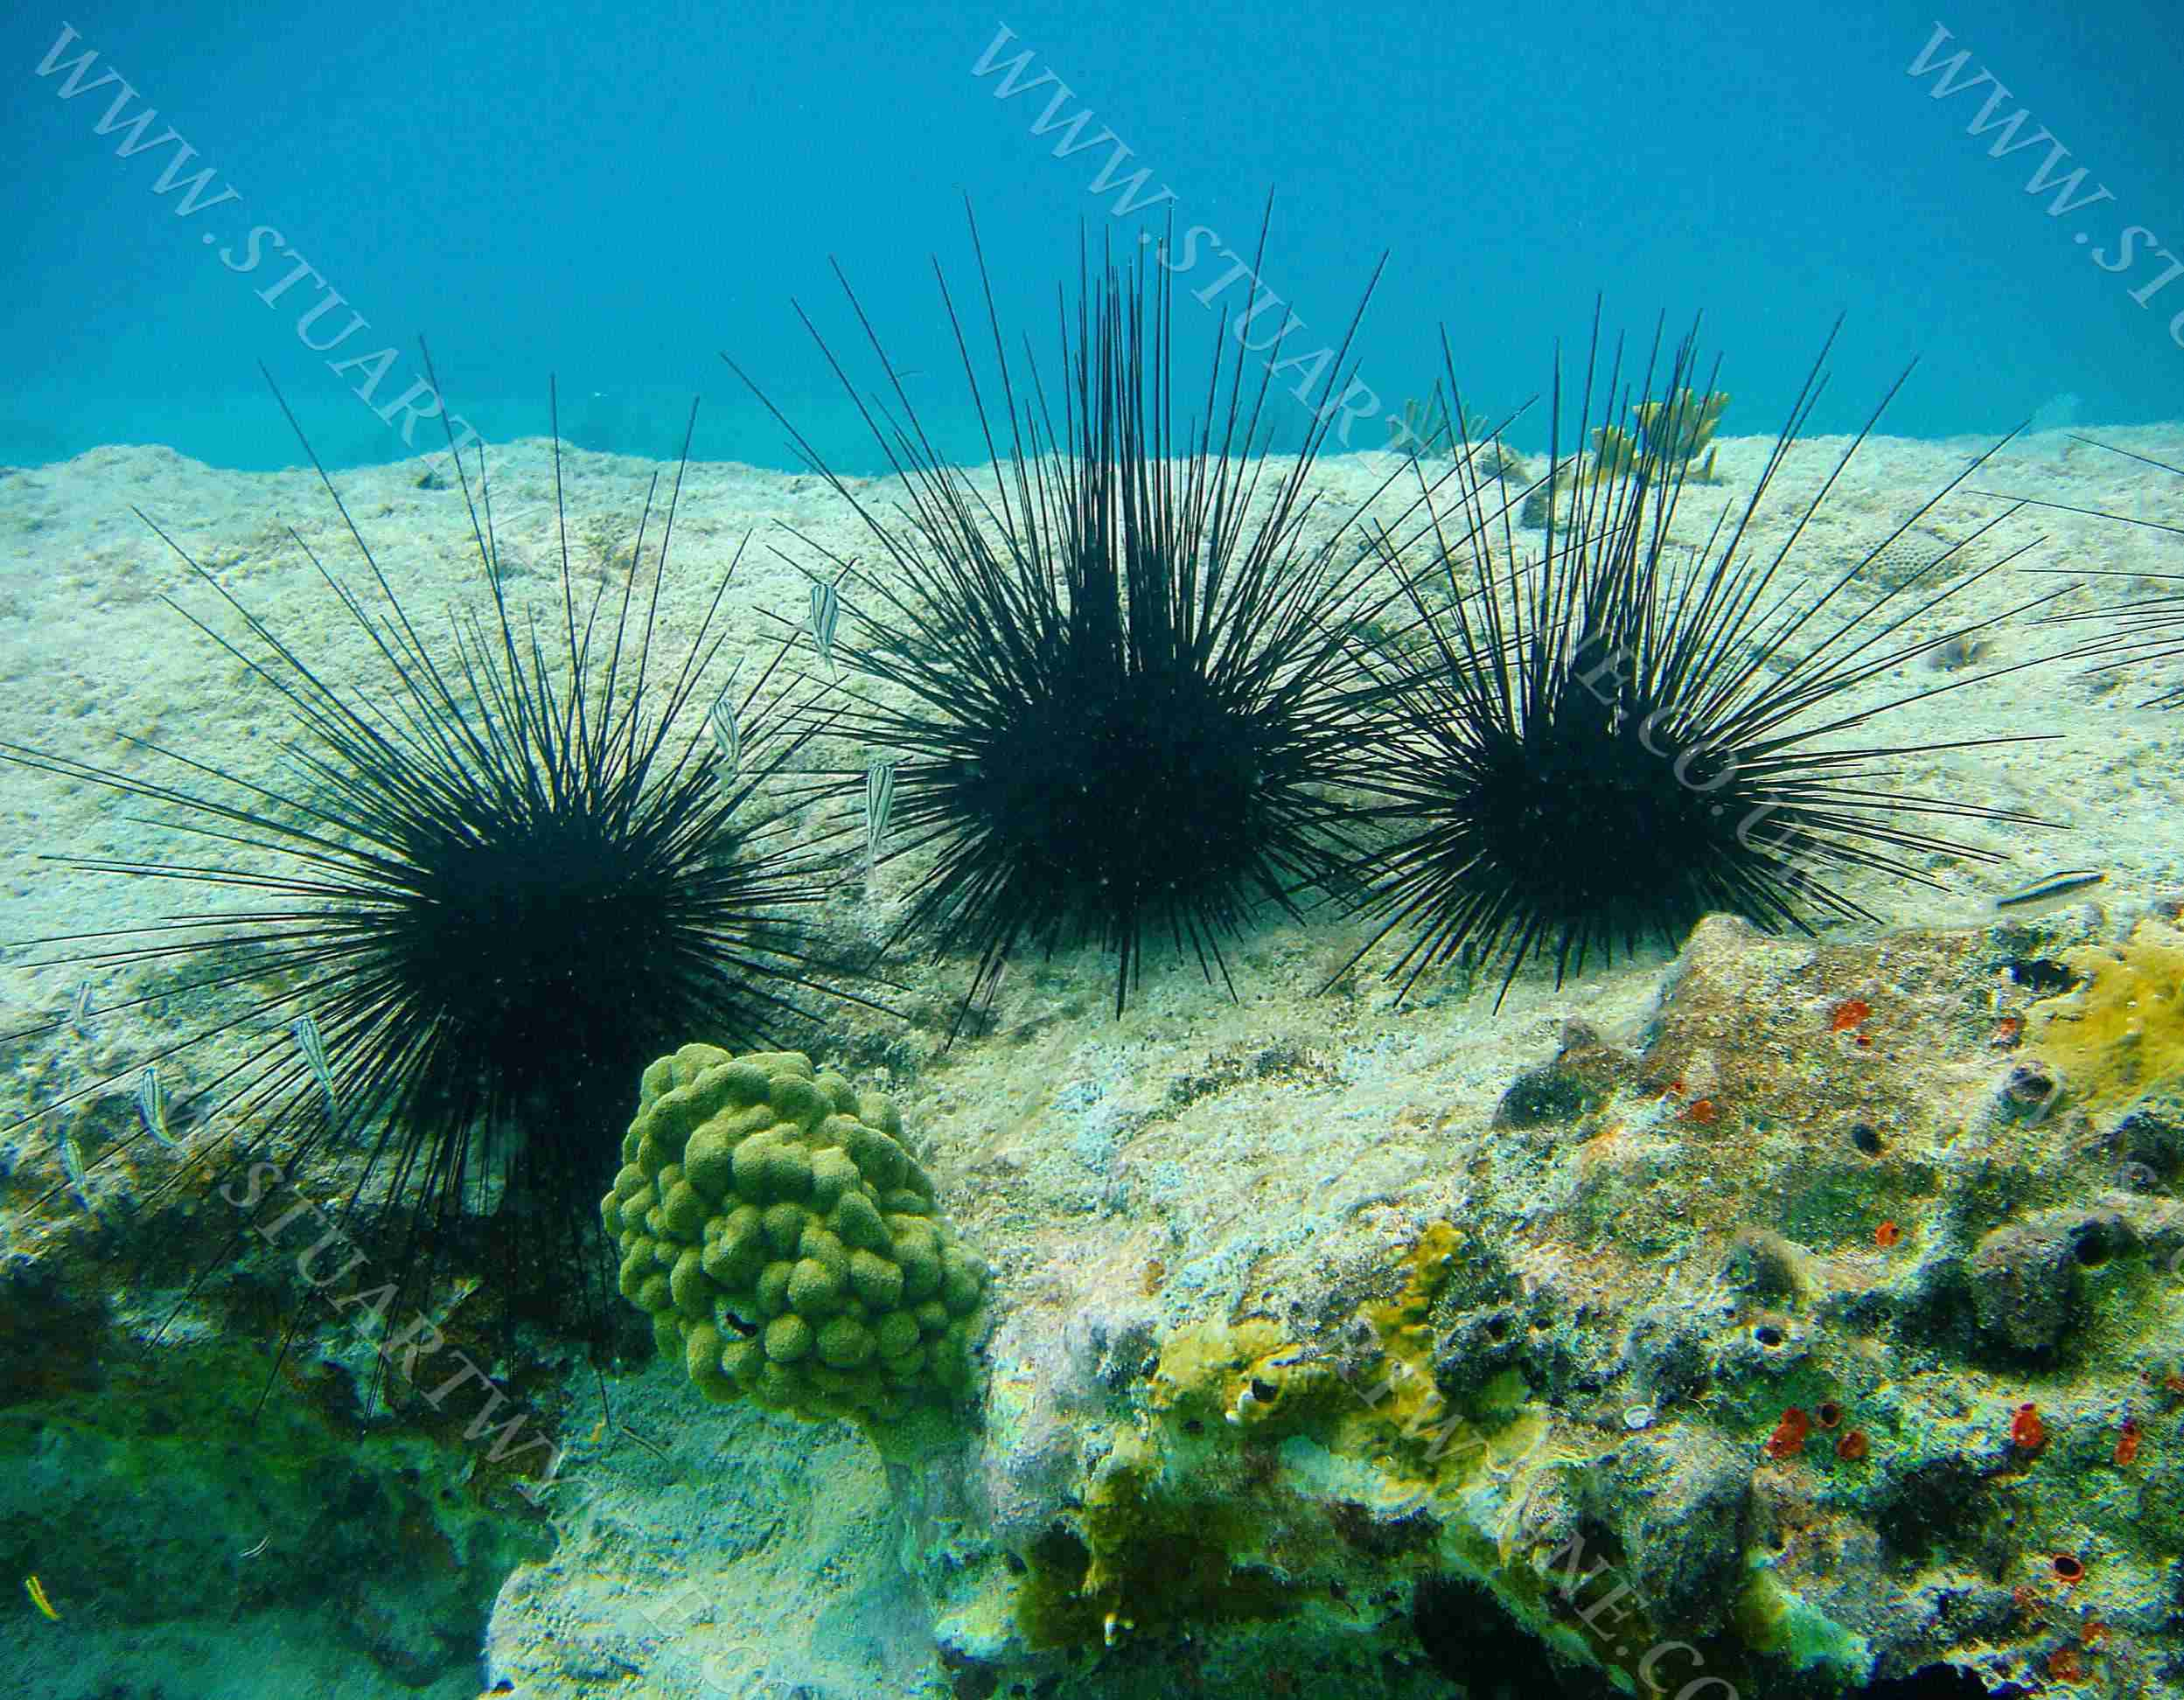 Longspined Sea Urchins Anguilla